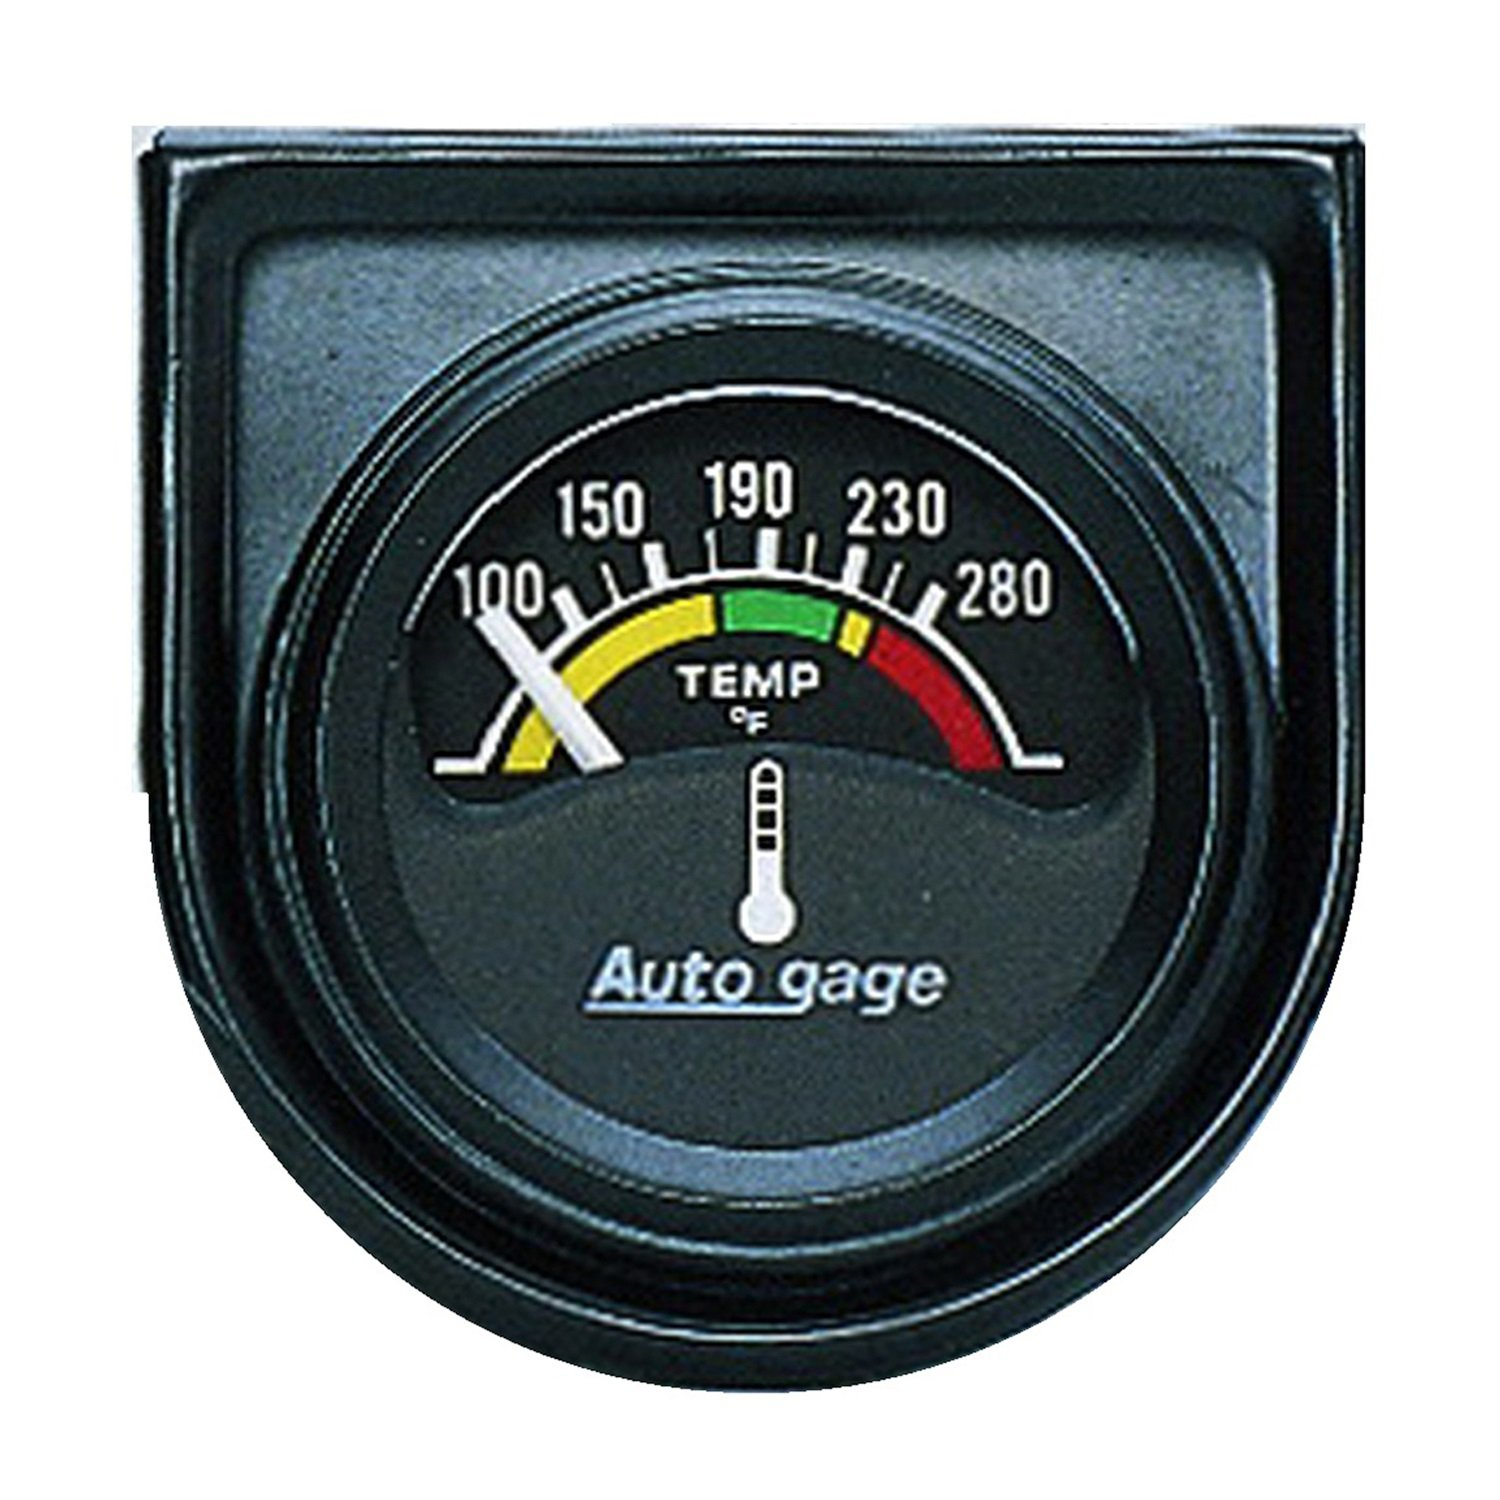 Auto Meter 2355 Autogage Electric Water Temperature Gauge by AUTO METER